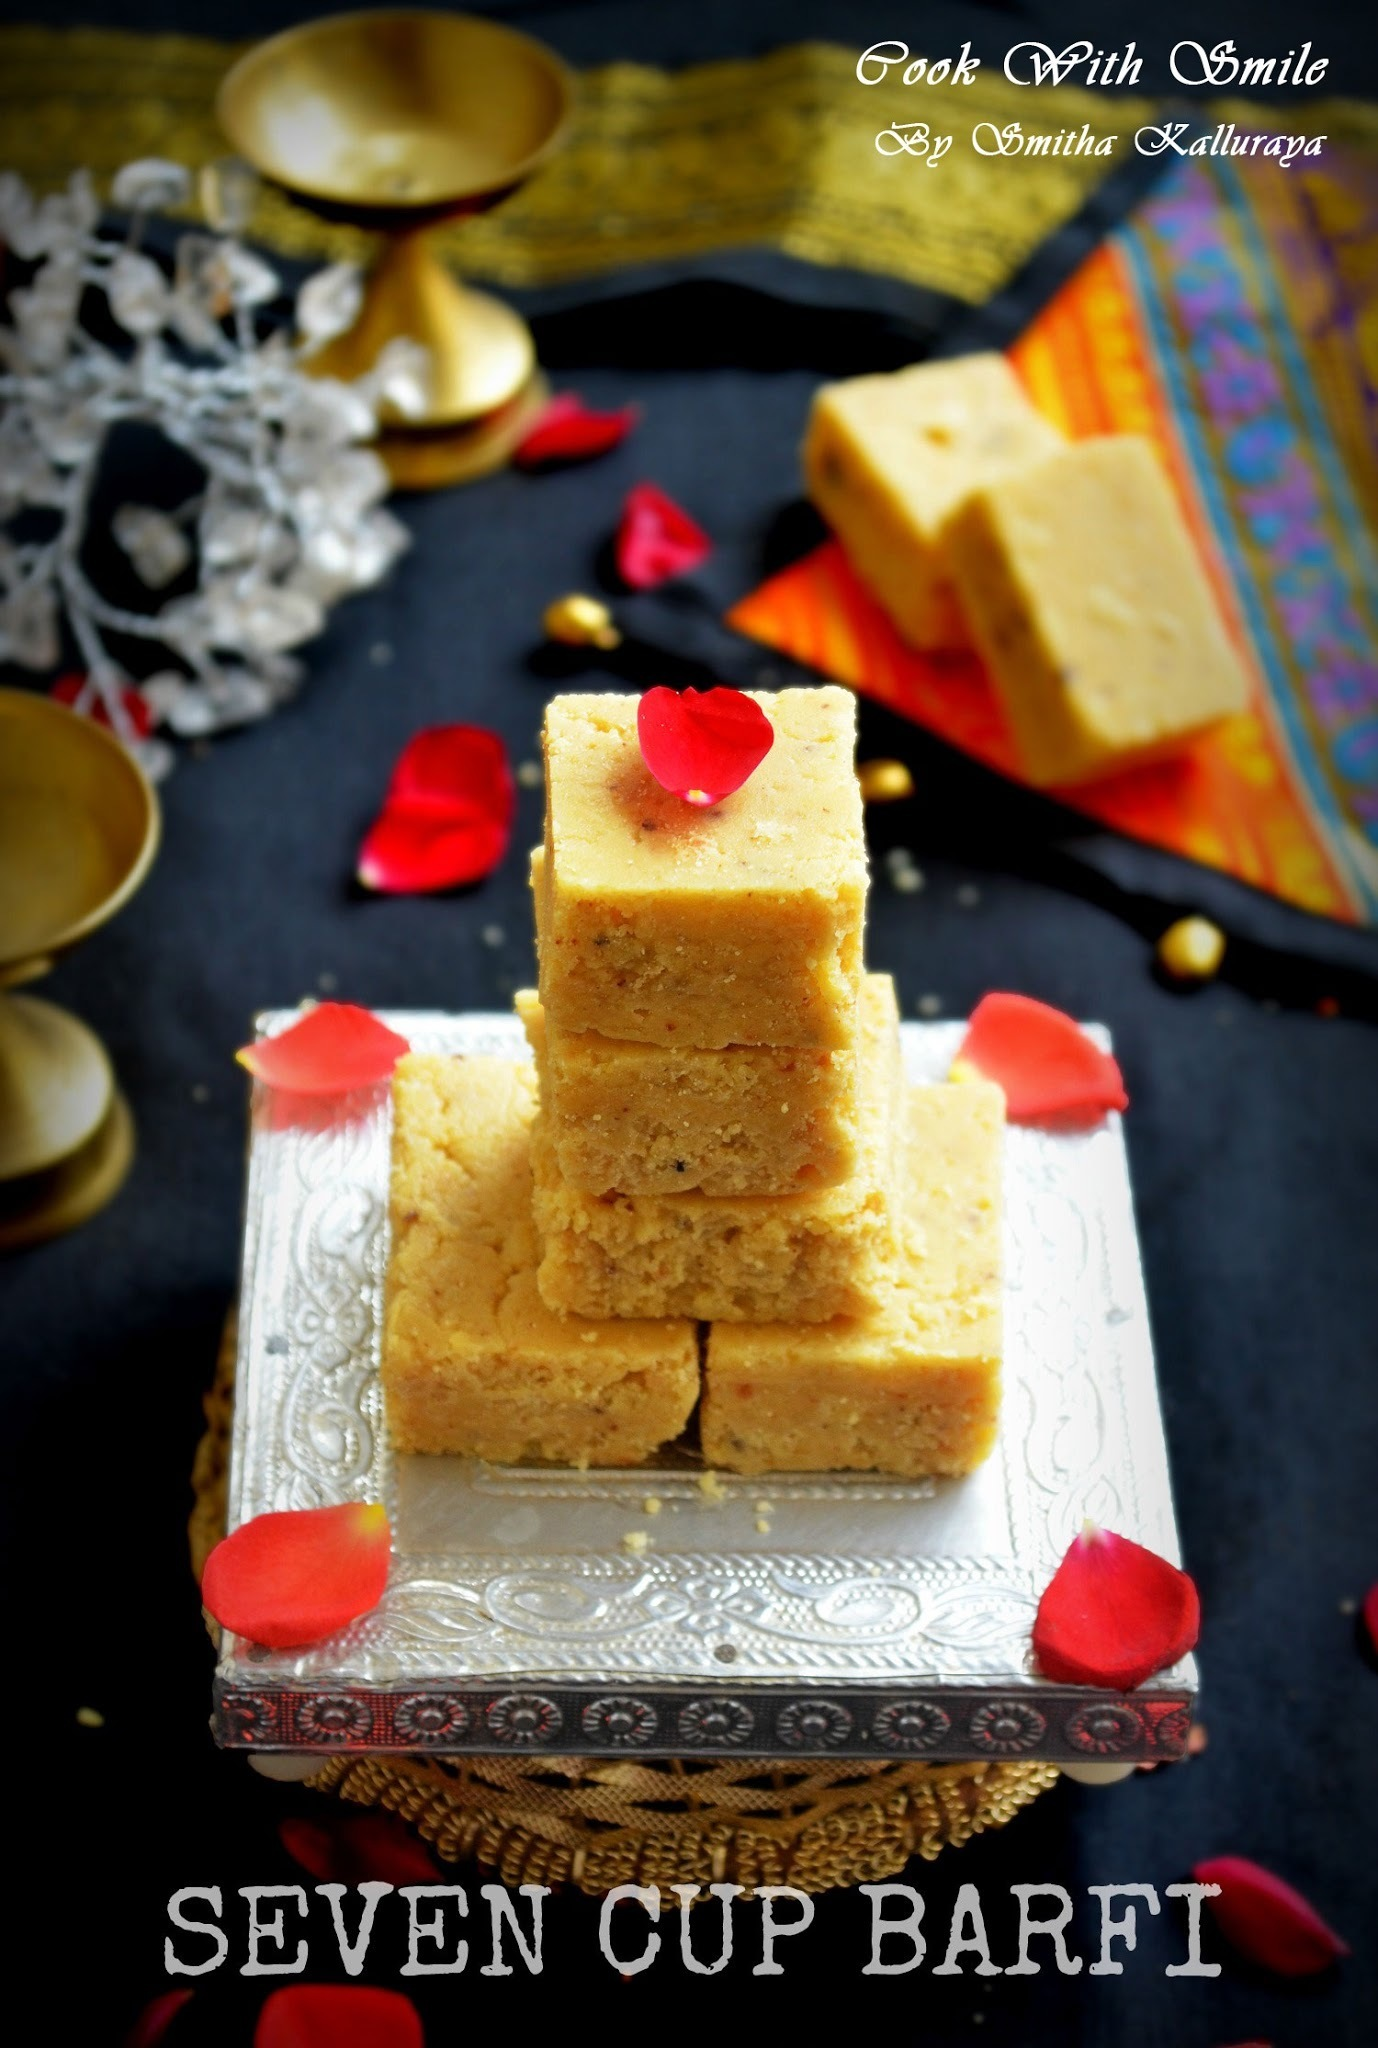 7 CUP BURFI RECIPE / SEVEN CUP BARFI / 7 CUPS SWEET ( CAKE ) RECIPE